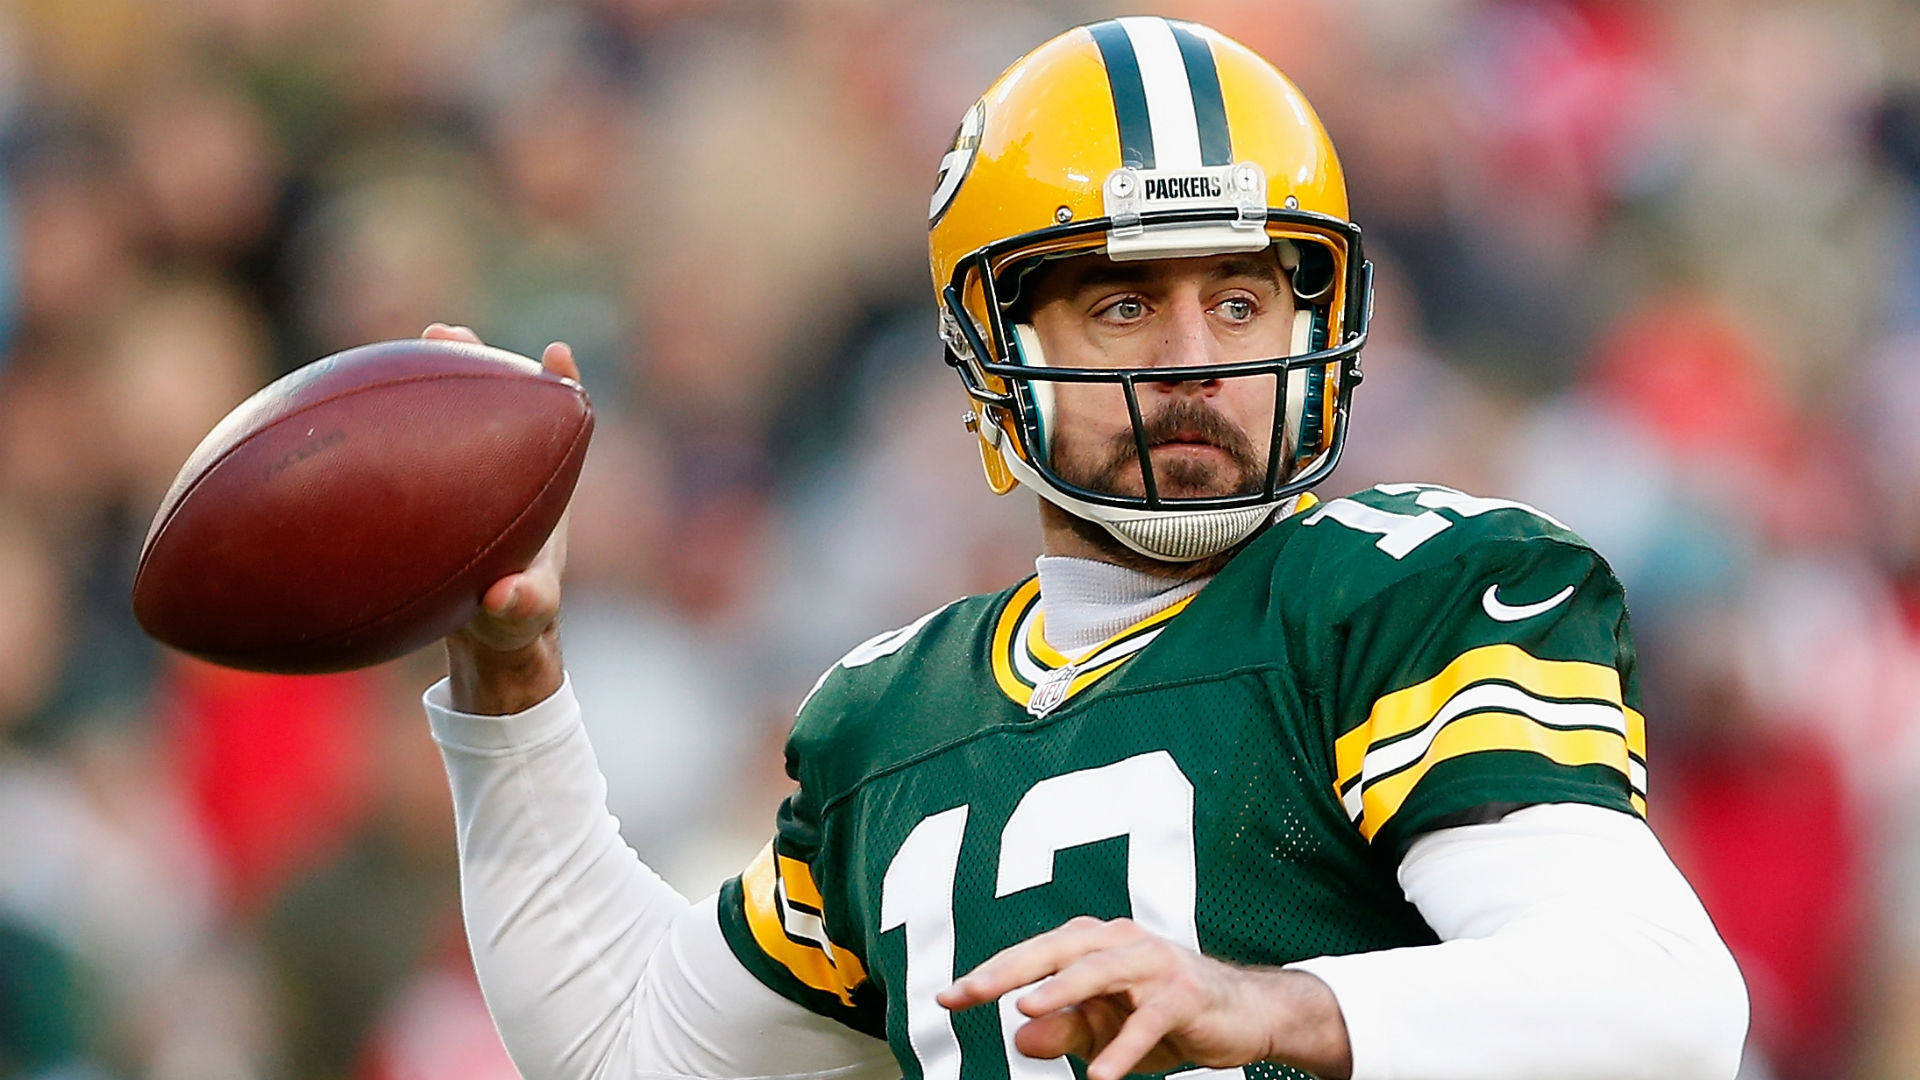 Falcons vs. Packers props - Night off for Aaron Rodgers?